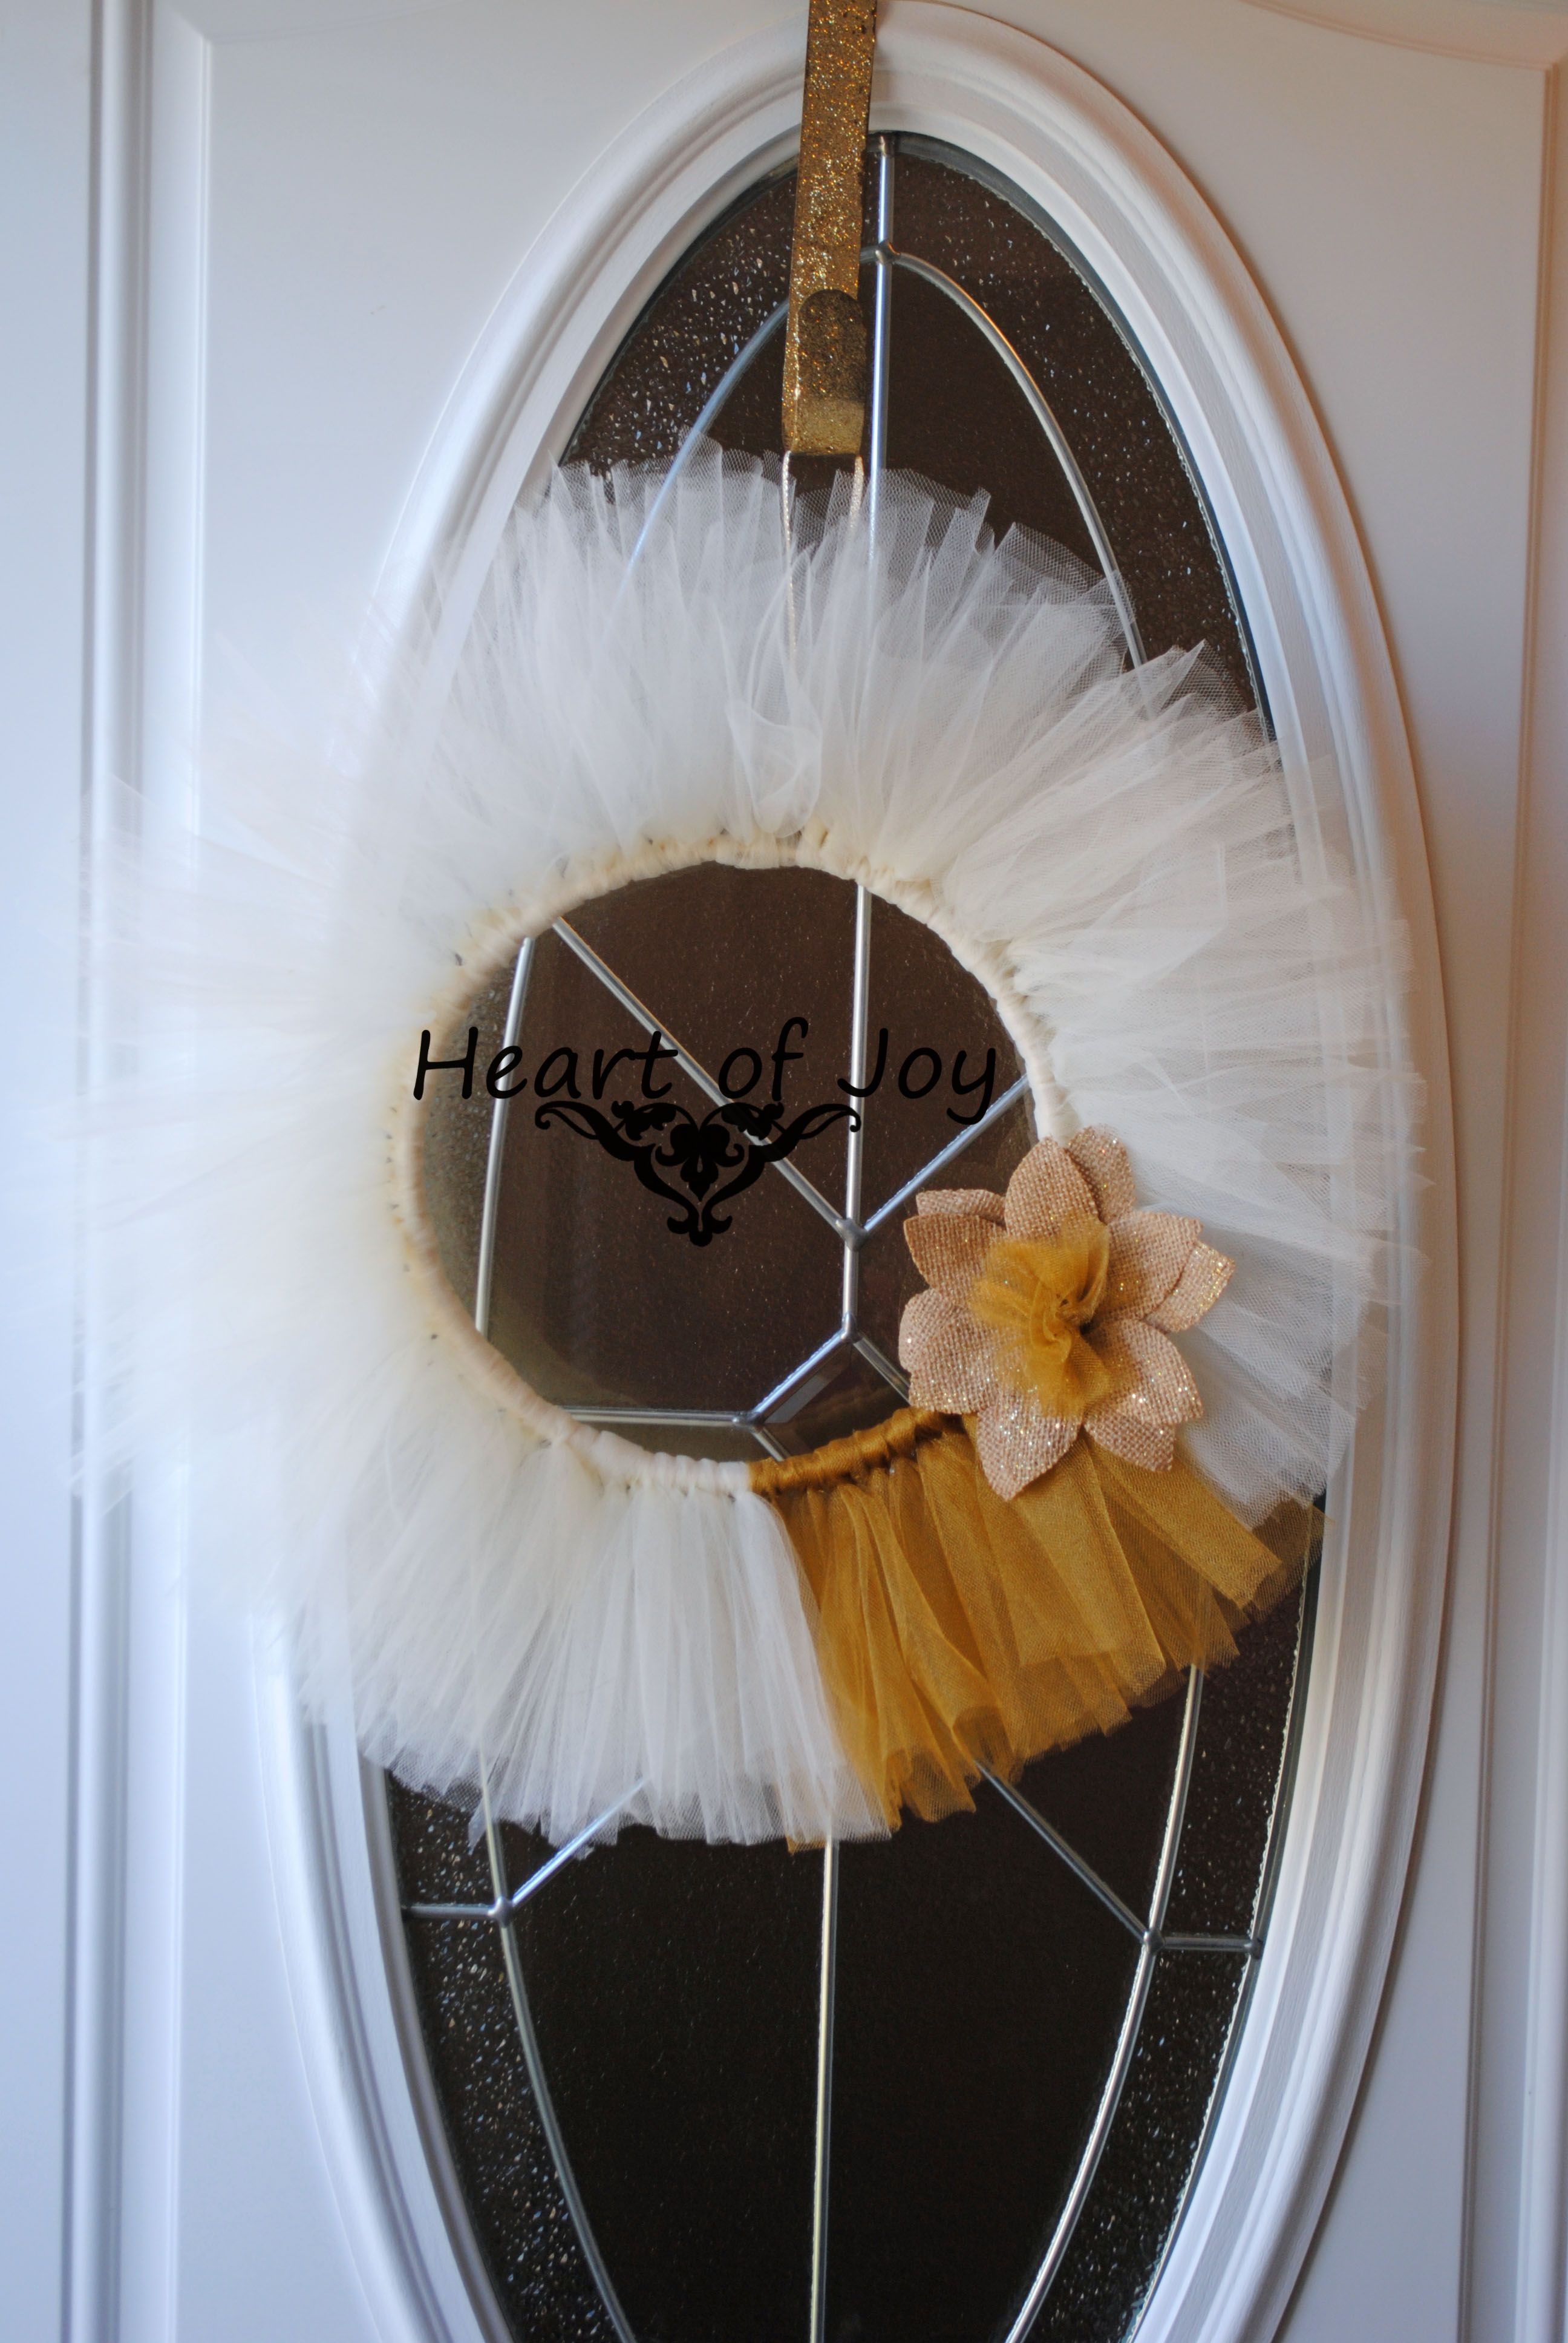 SOLD  Can be recreated if requested  $35.00 Ivory and gold tulle wreath with burlap flower embellishment www.facebook.com/myheartofjoy heartofjoycreations@gmail.com